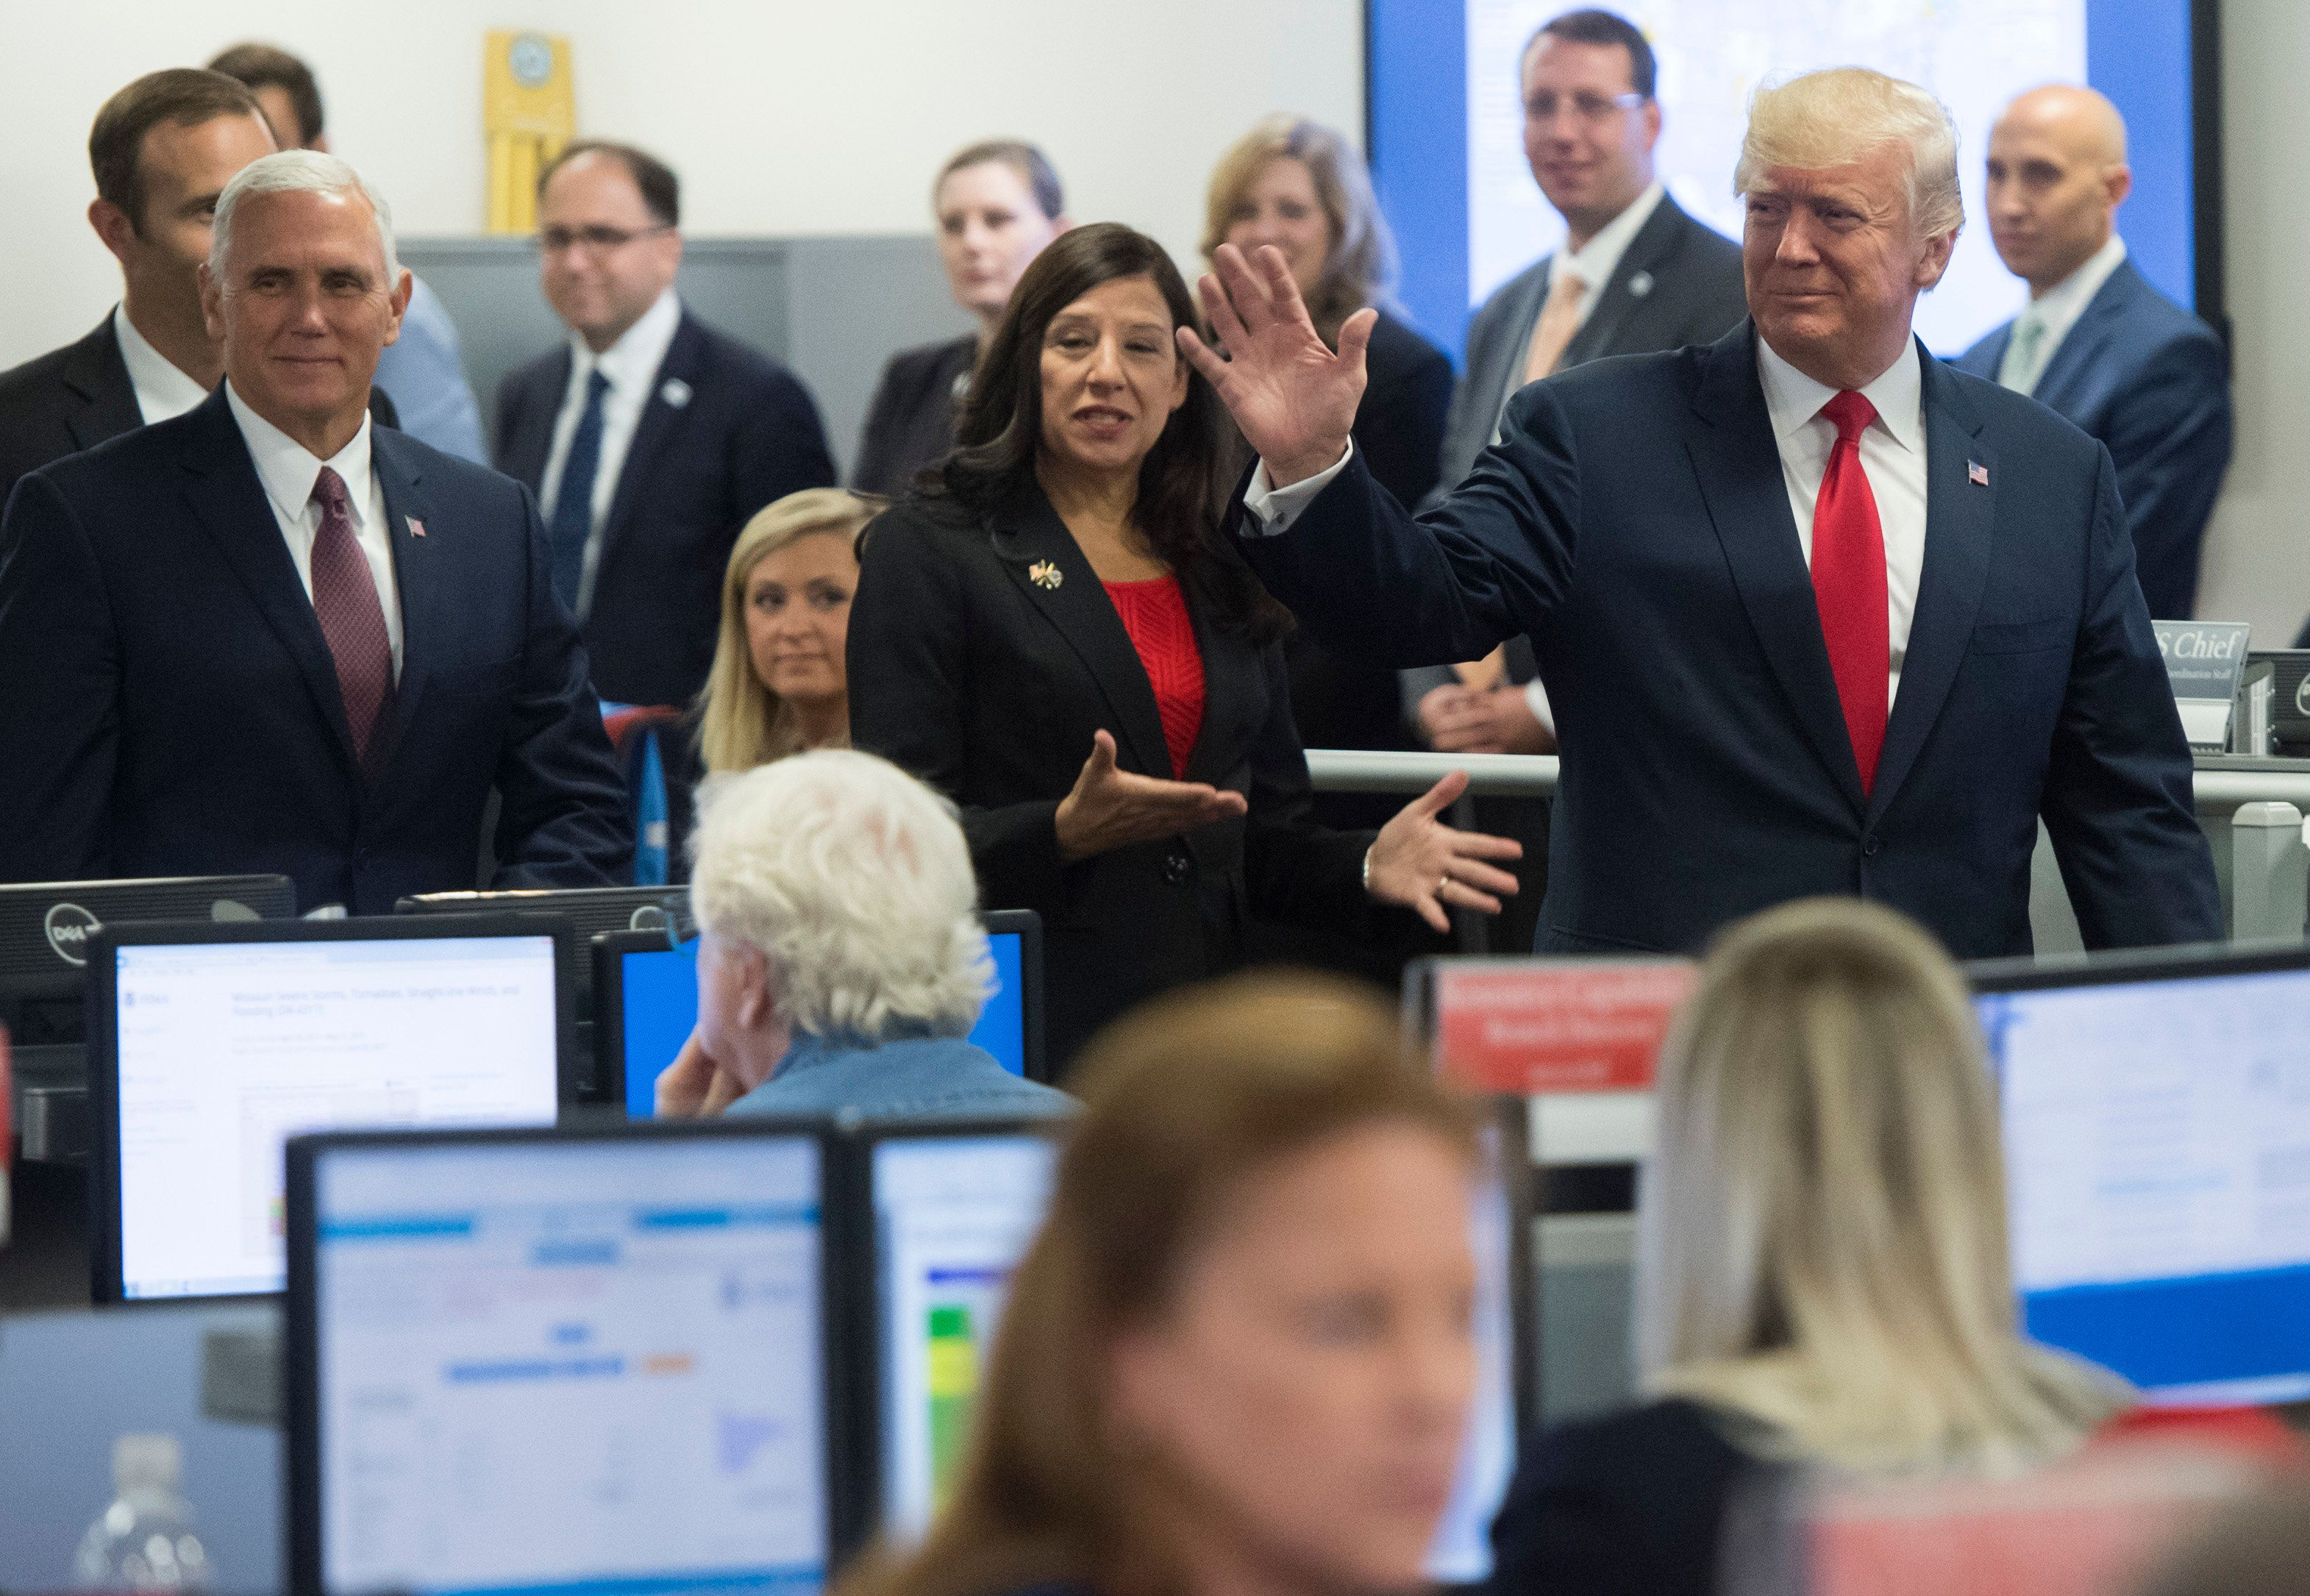 US President Donald Trump along with US Vice President Mike Pence(L) walks through the FEMA Command Center following a briefing on hurricane season at FEMA Headquarters in Washington, DC, August 4, 2017. / AFP PHOTO / SAUL LOEB        (Photo credit should read SAUL LOEB/AFP/Getty Images)